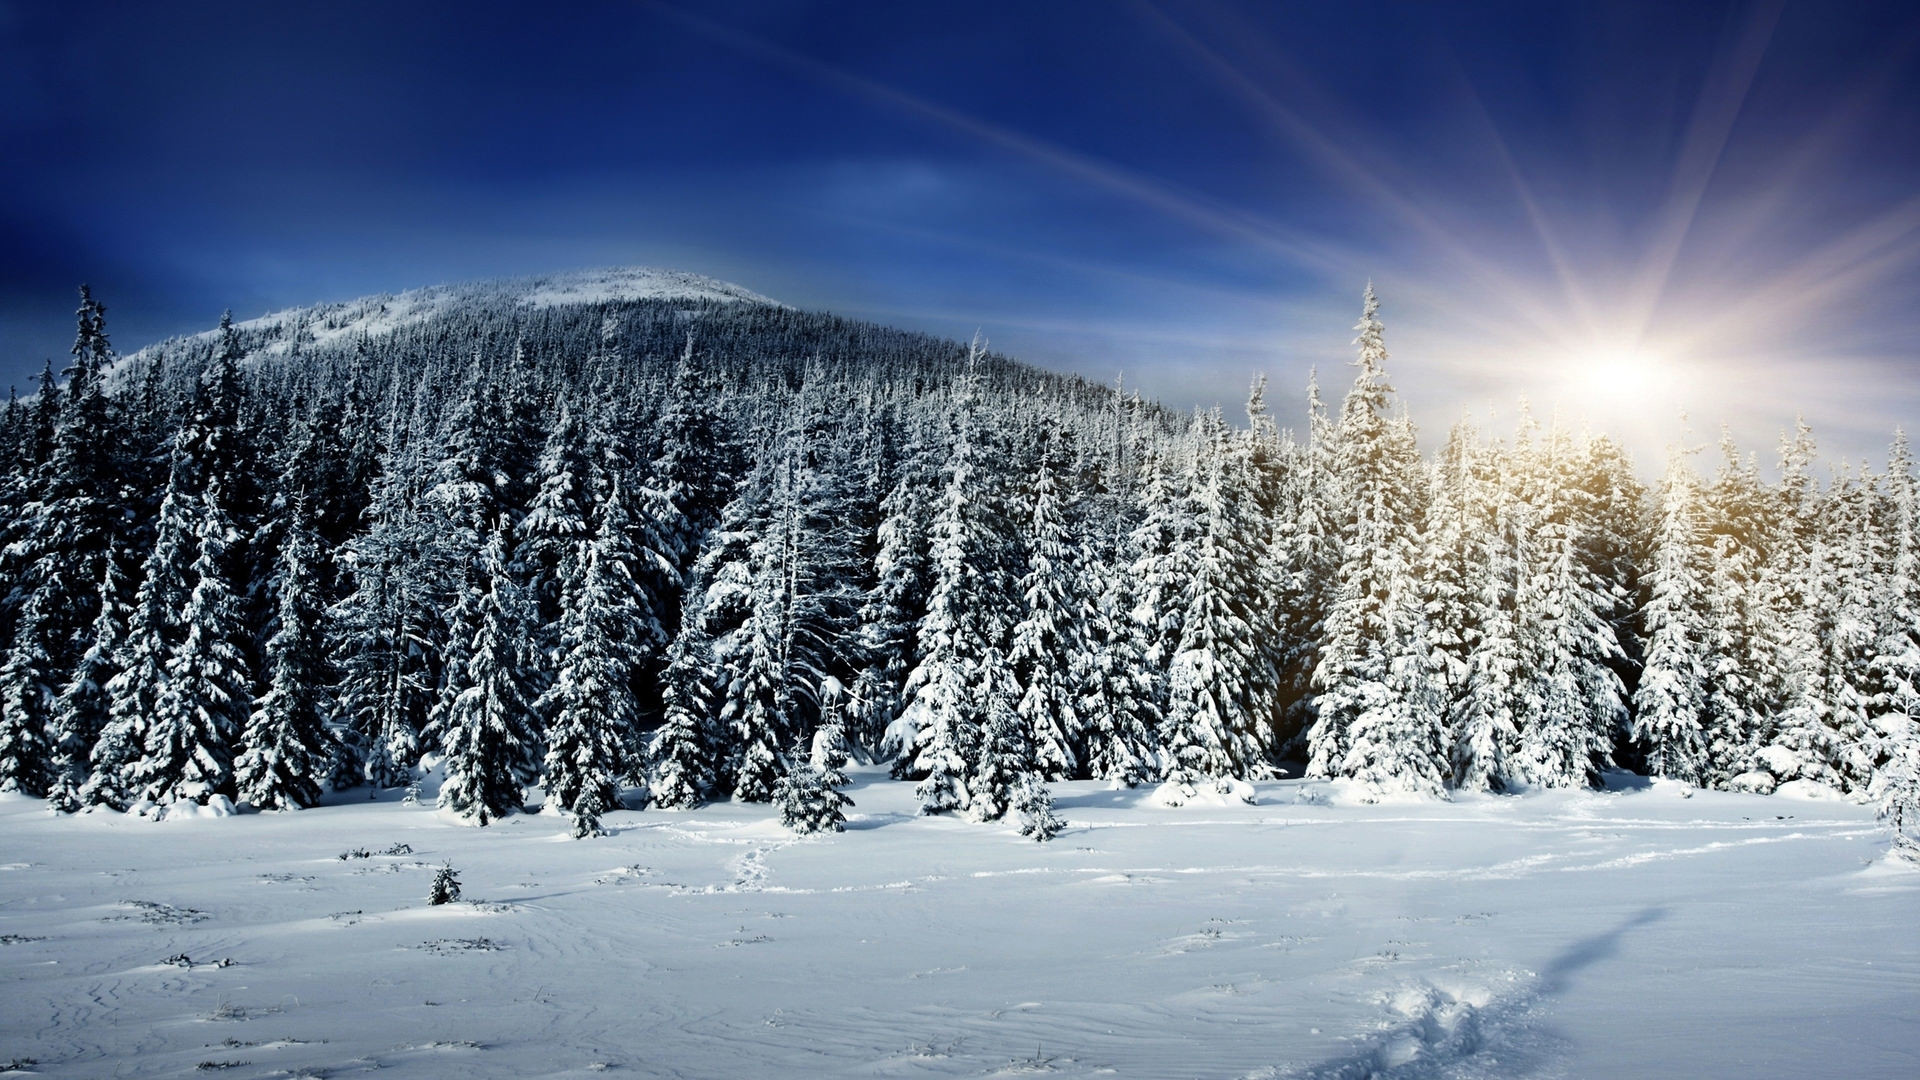 Beautiful snow wallpapers - Snowy wallpaper ...